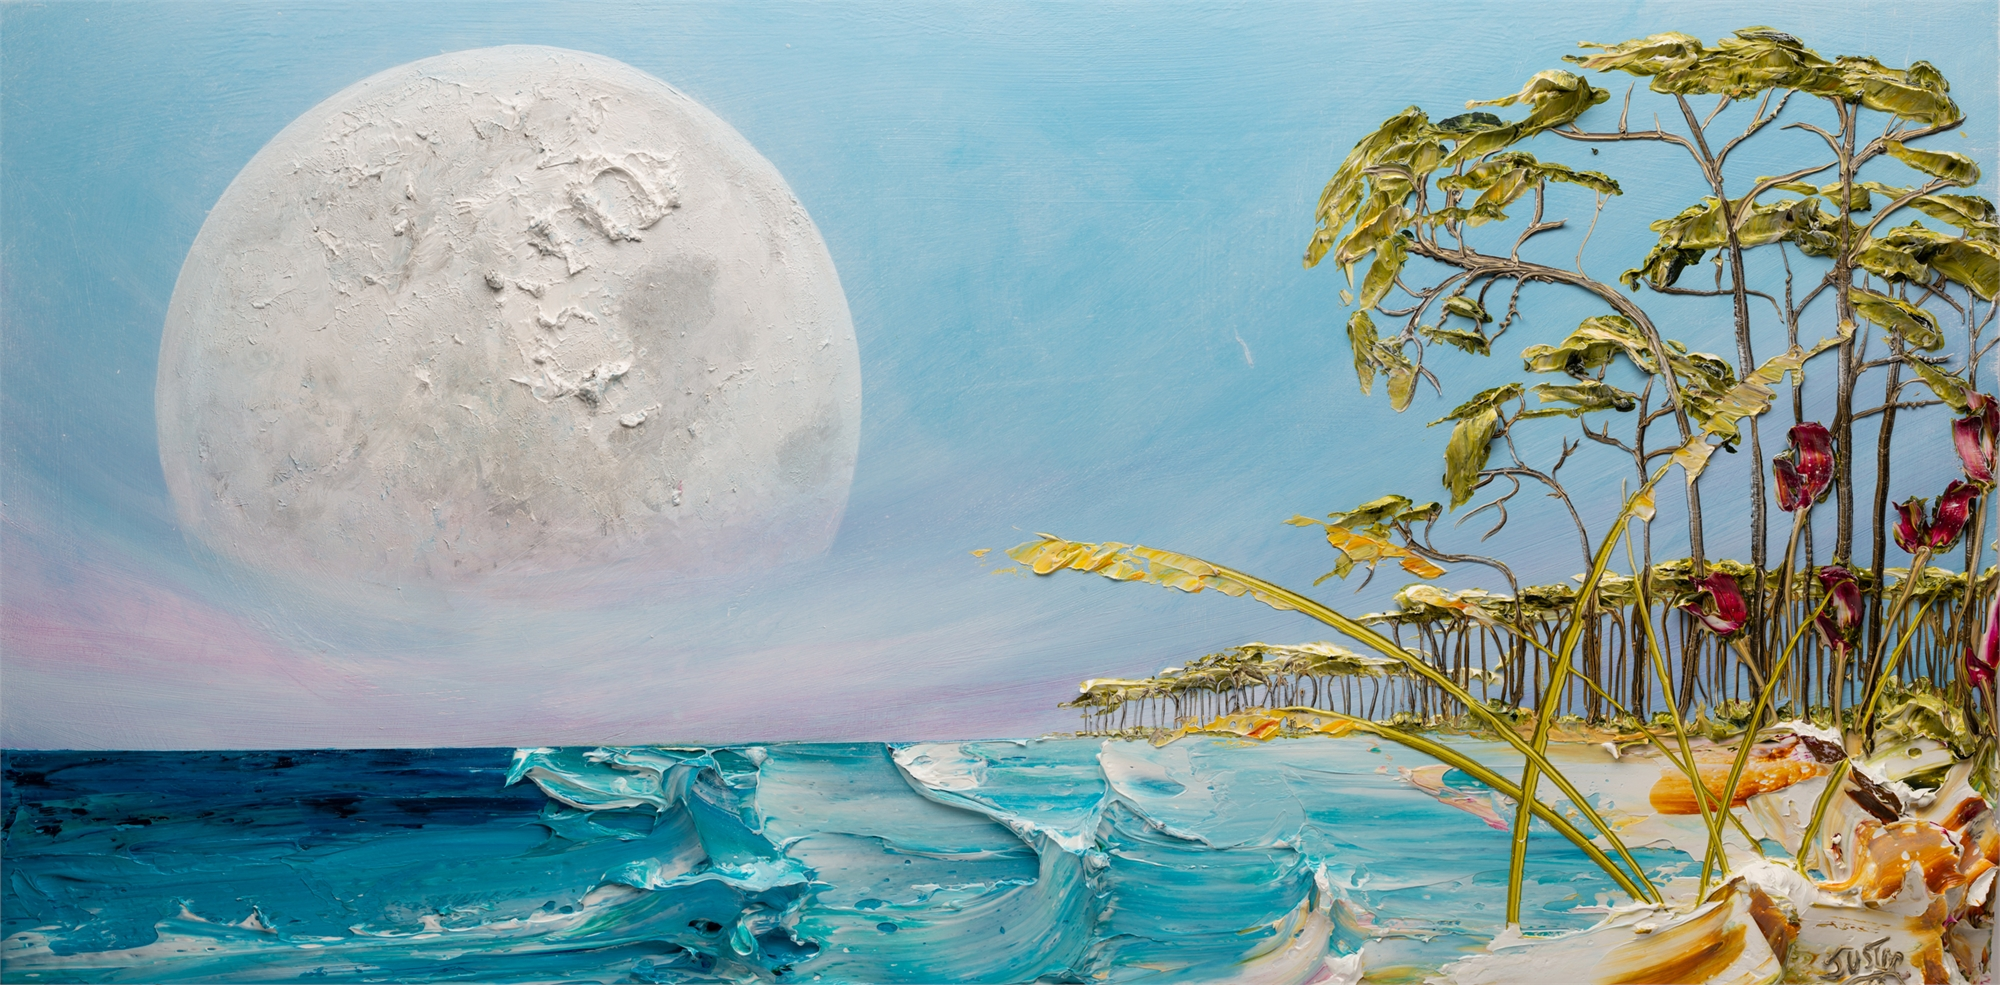 (SOLD) SUNRISE MOONSCAPE-MS-60x30-2019-228 by JUSTIN GAFFREY